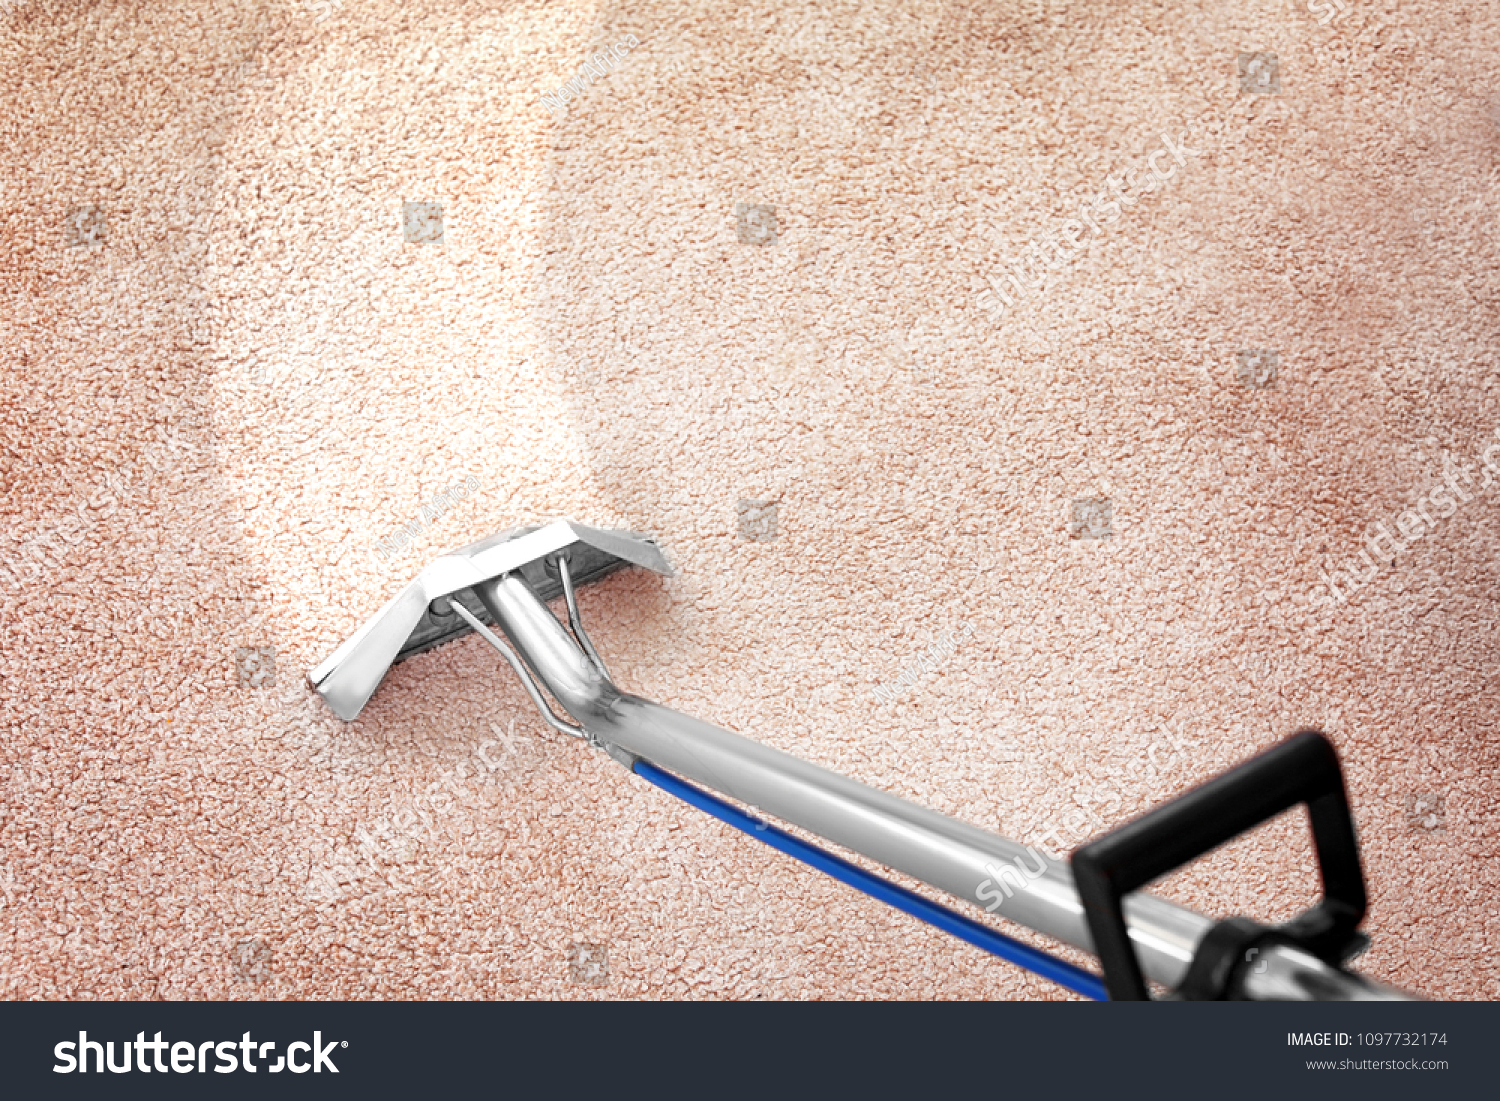 Removing dirt from carpet with professional vacuum cleaner indoors #1097732174